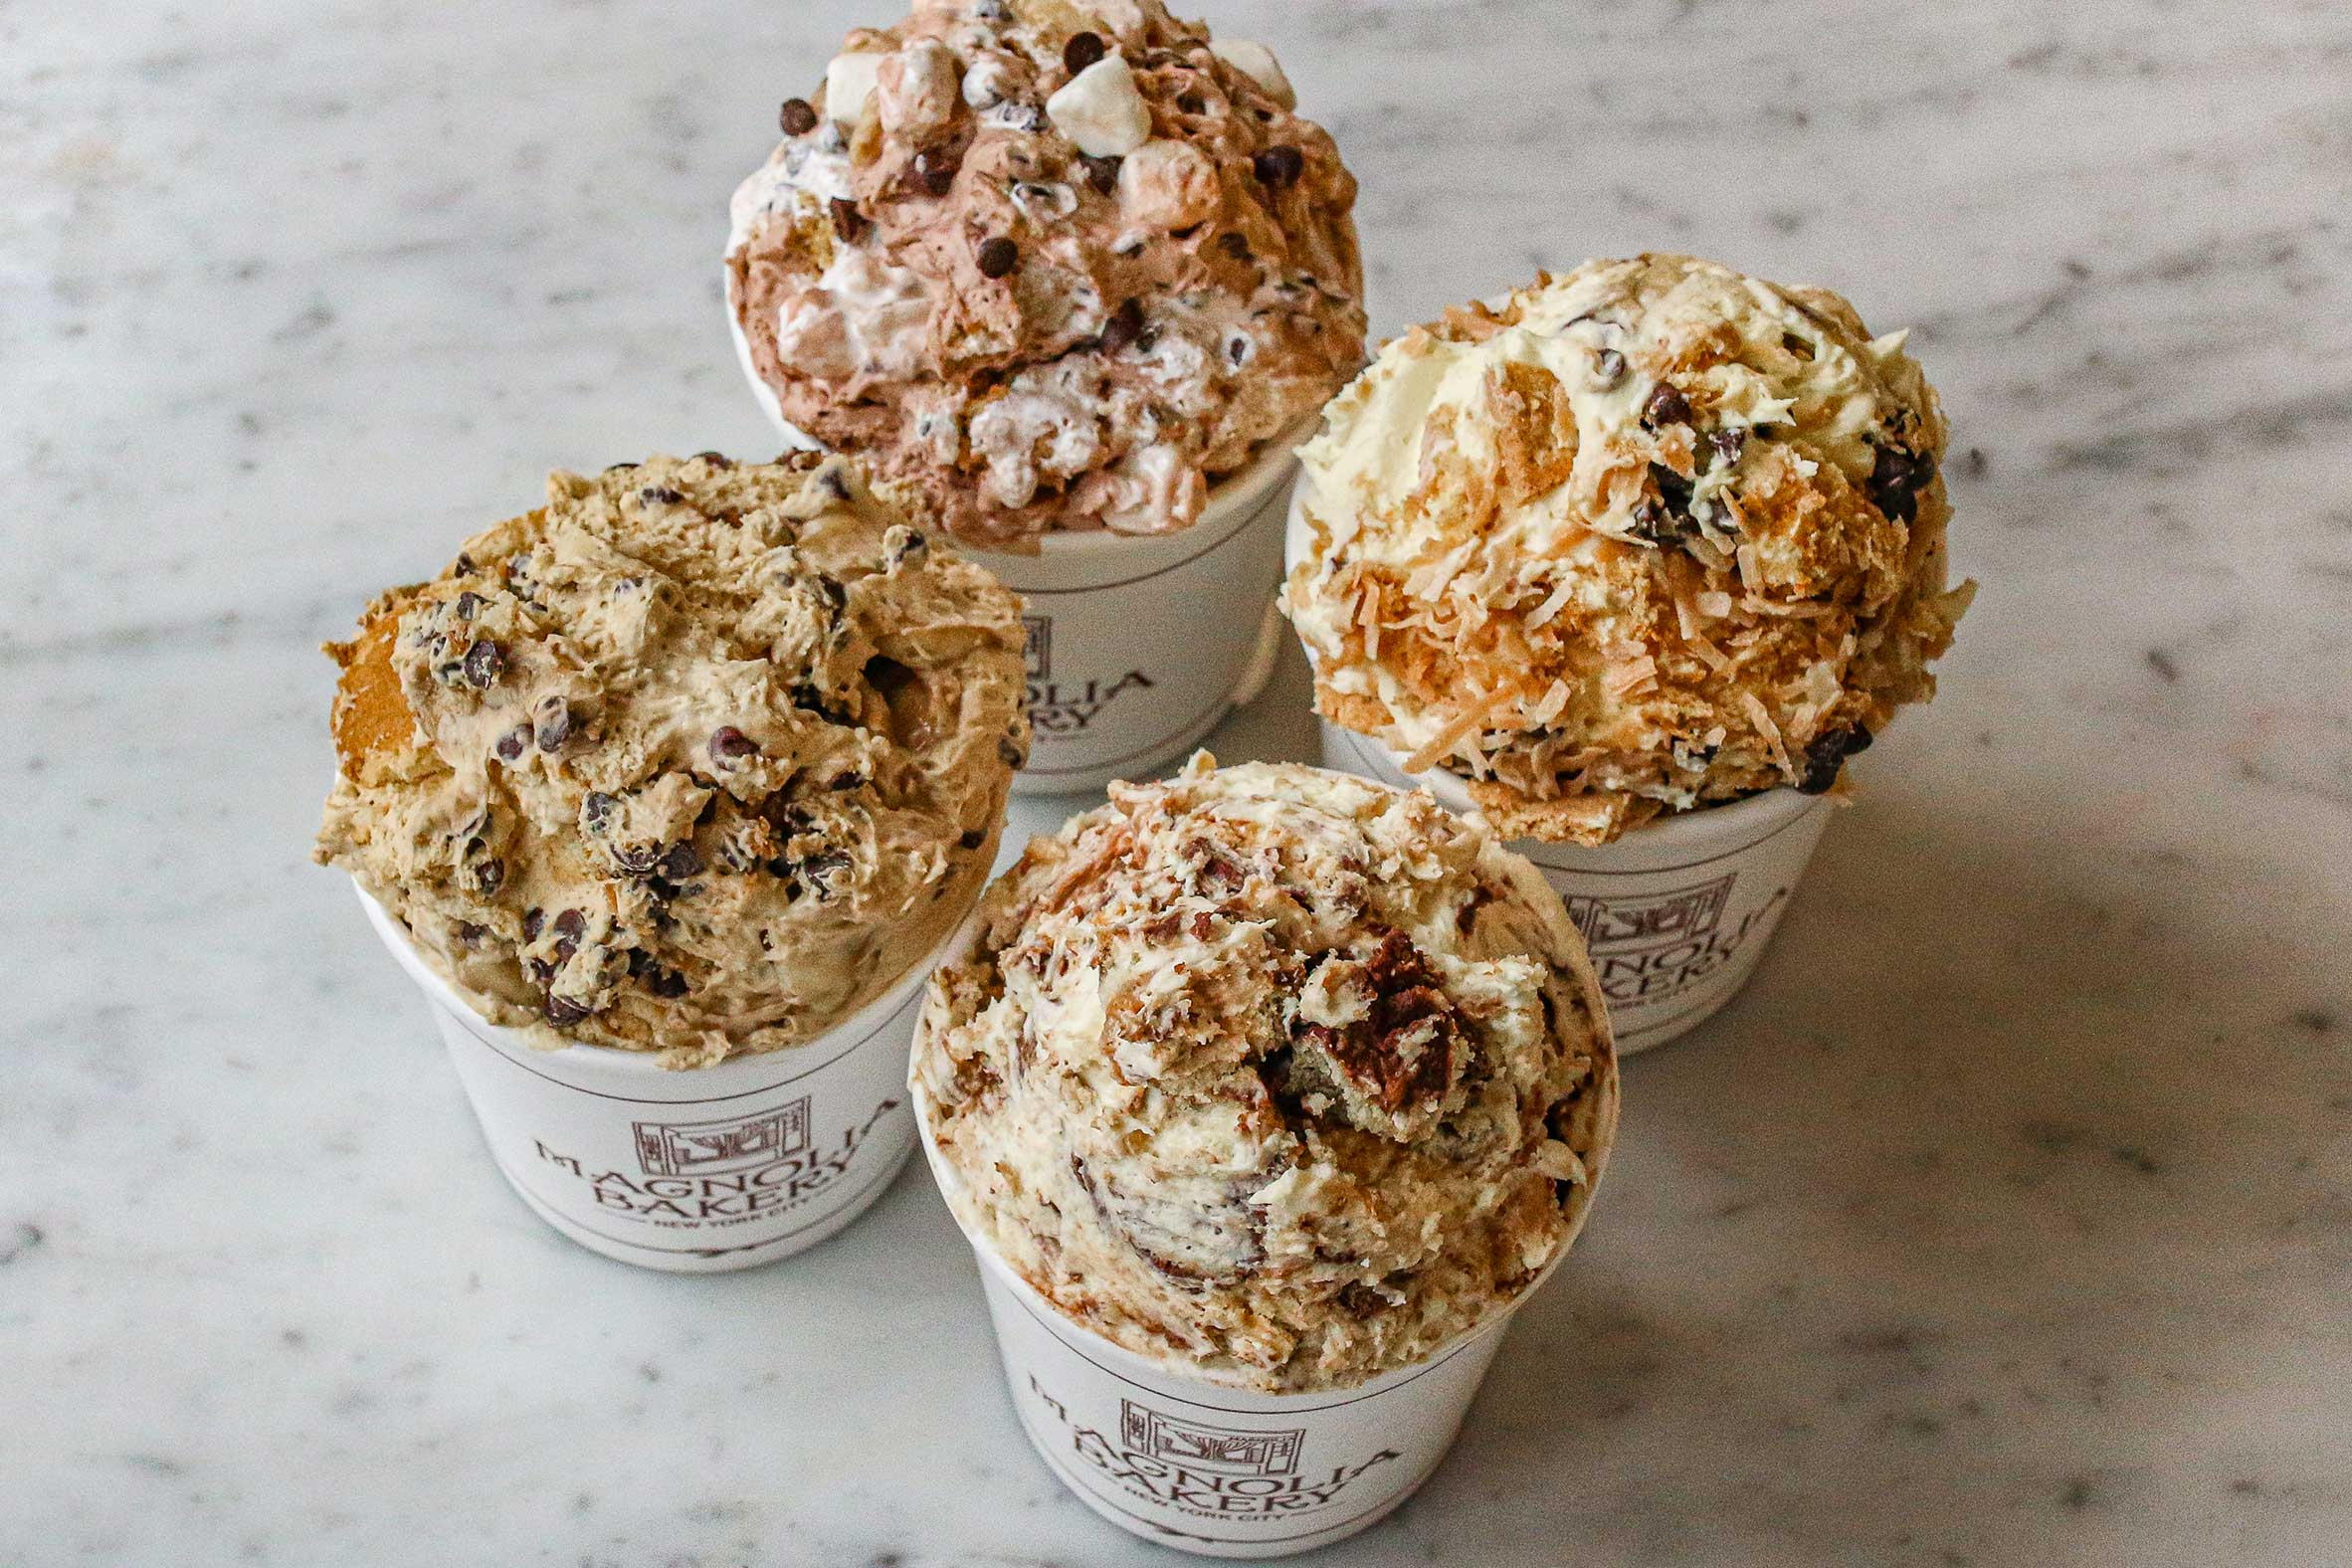 Customer's Choice - YOU will be choosing of flavor for August 19-28 Keep checking our Instagram story to cast your ballot! Choose between Java Chip, S'mores, Magic or Boston Cream Pie.August 19-28